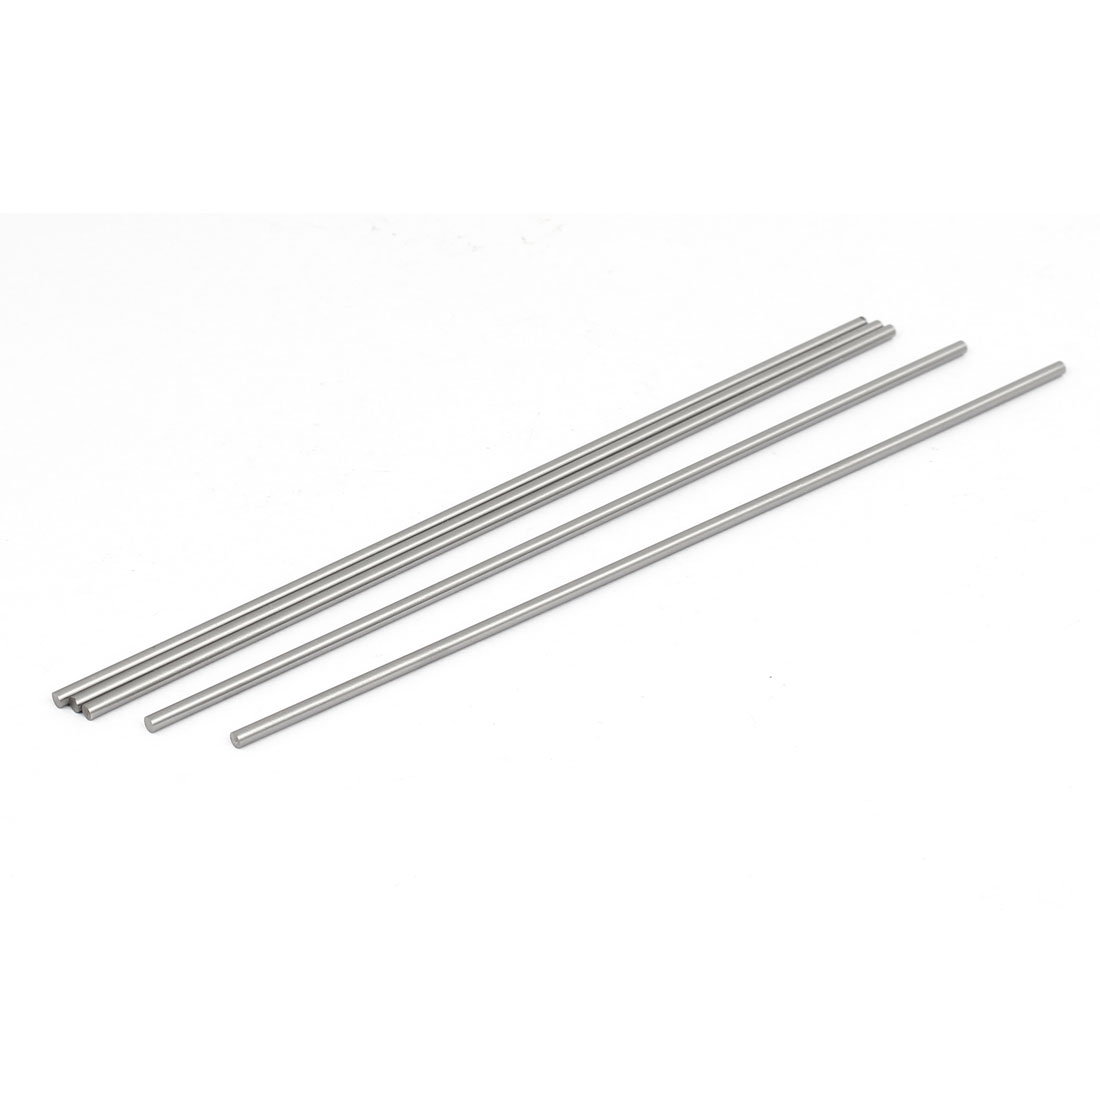 3mm Dia 200mm Length HSS Round Shaft Rod Bar Lathe Tools Gray 5pcs